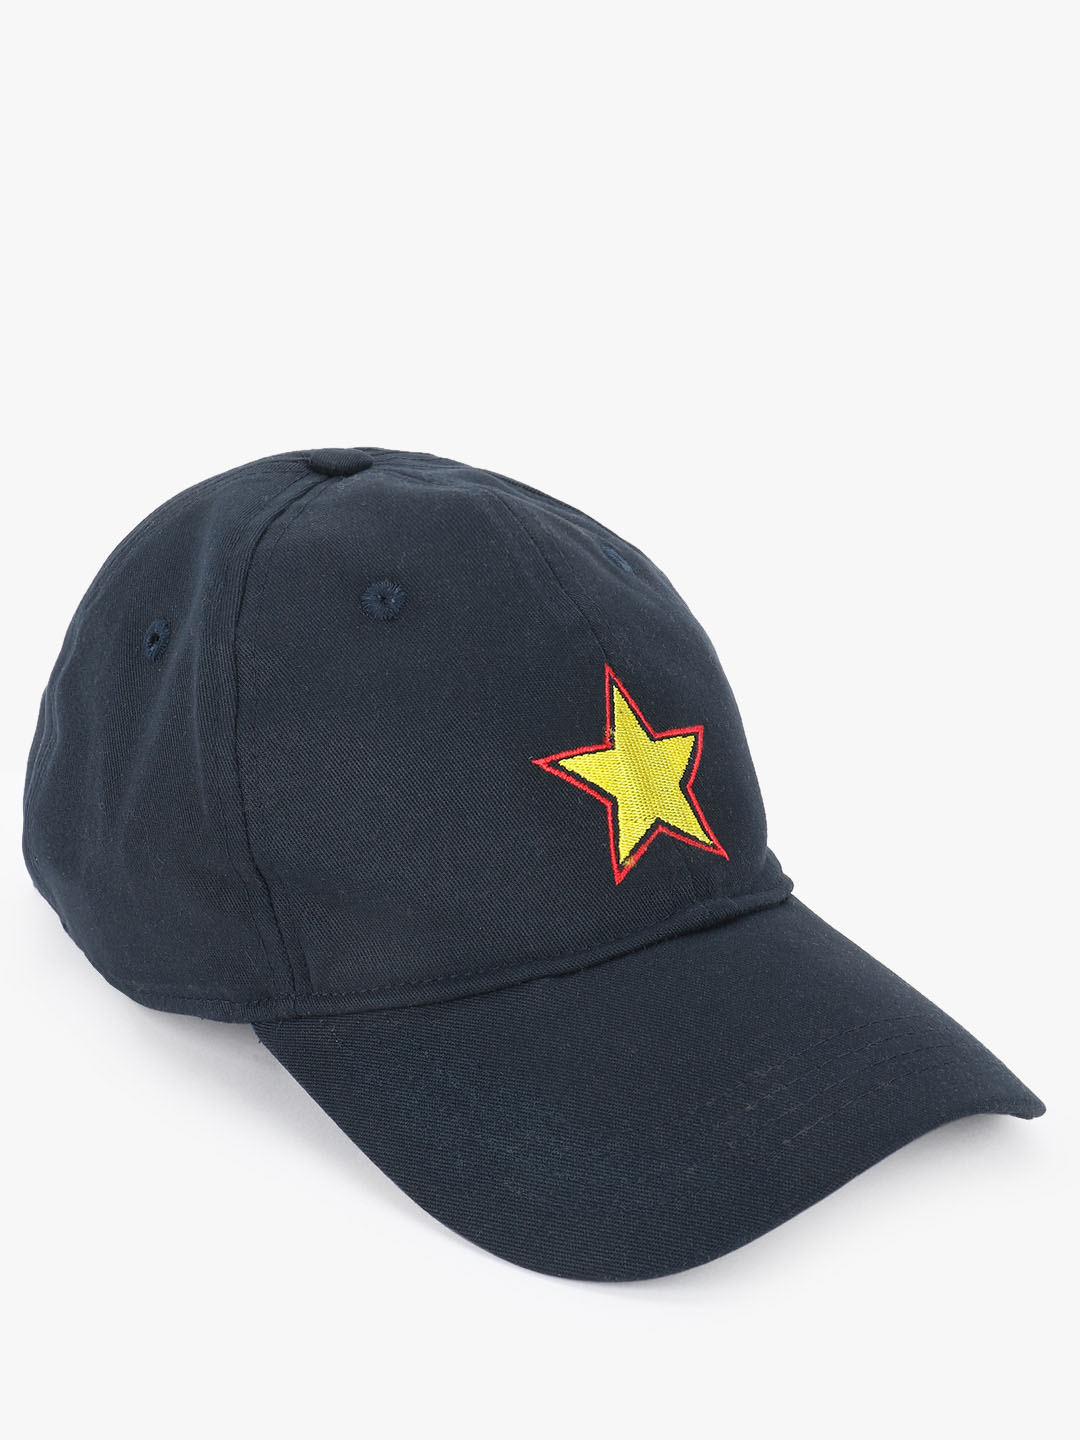 Lazy Panda Blue Star Embroidered Cap 1